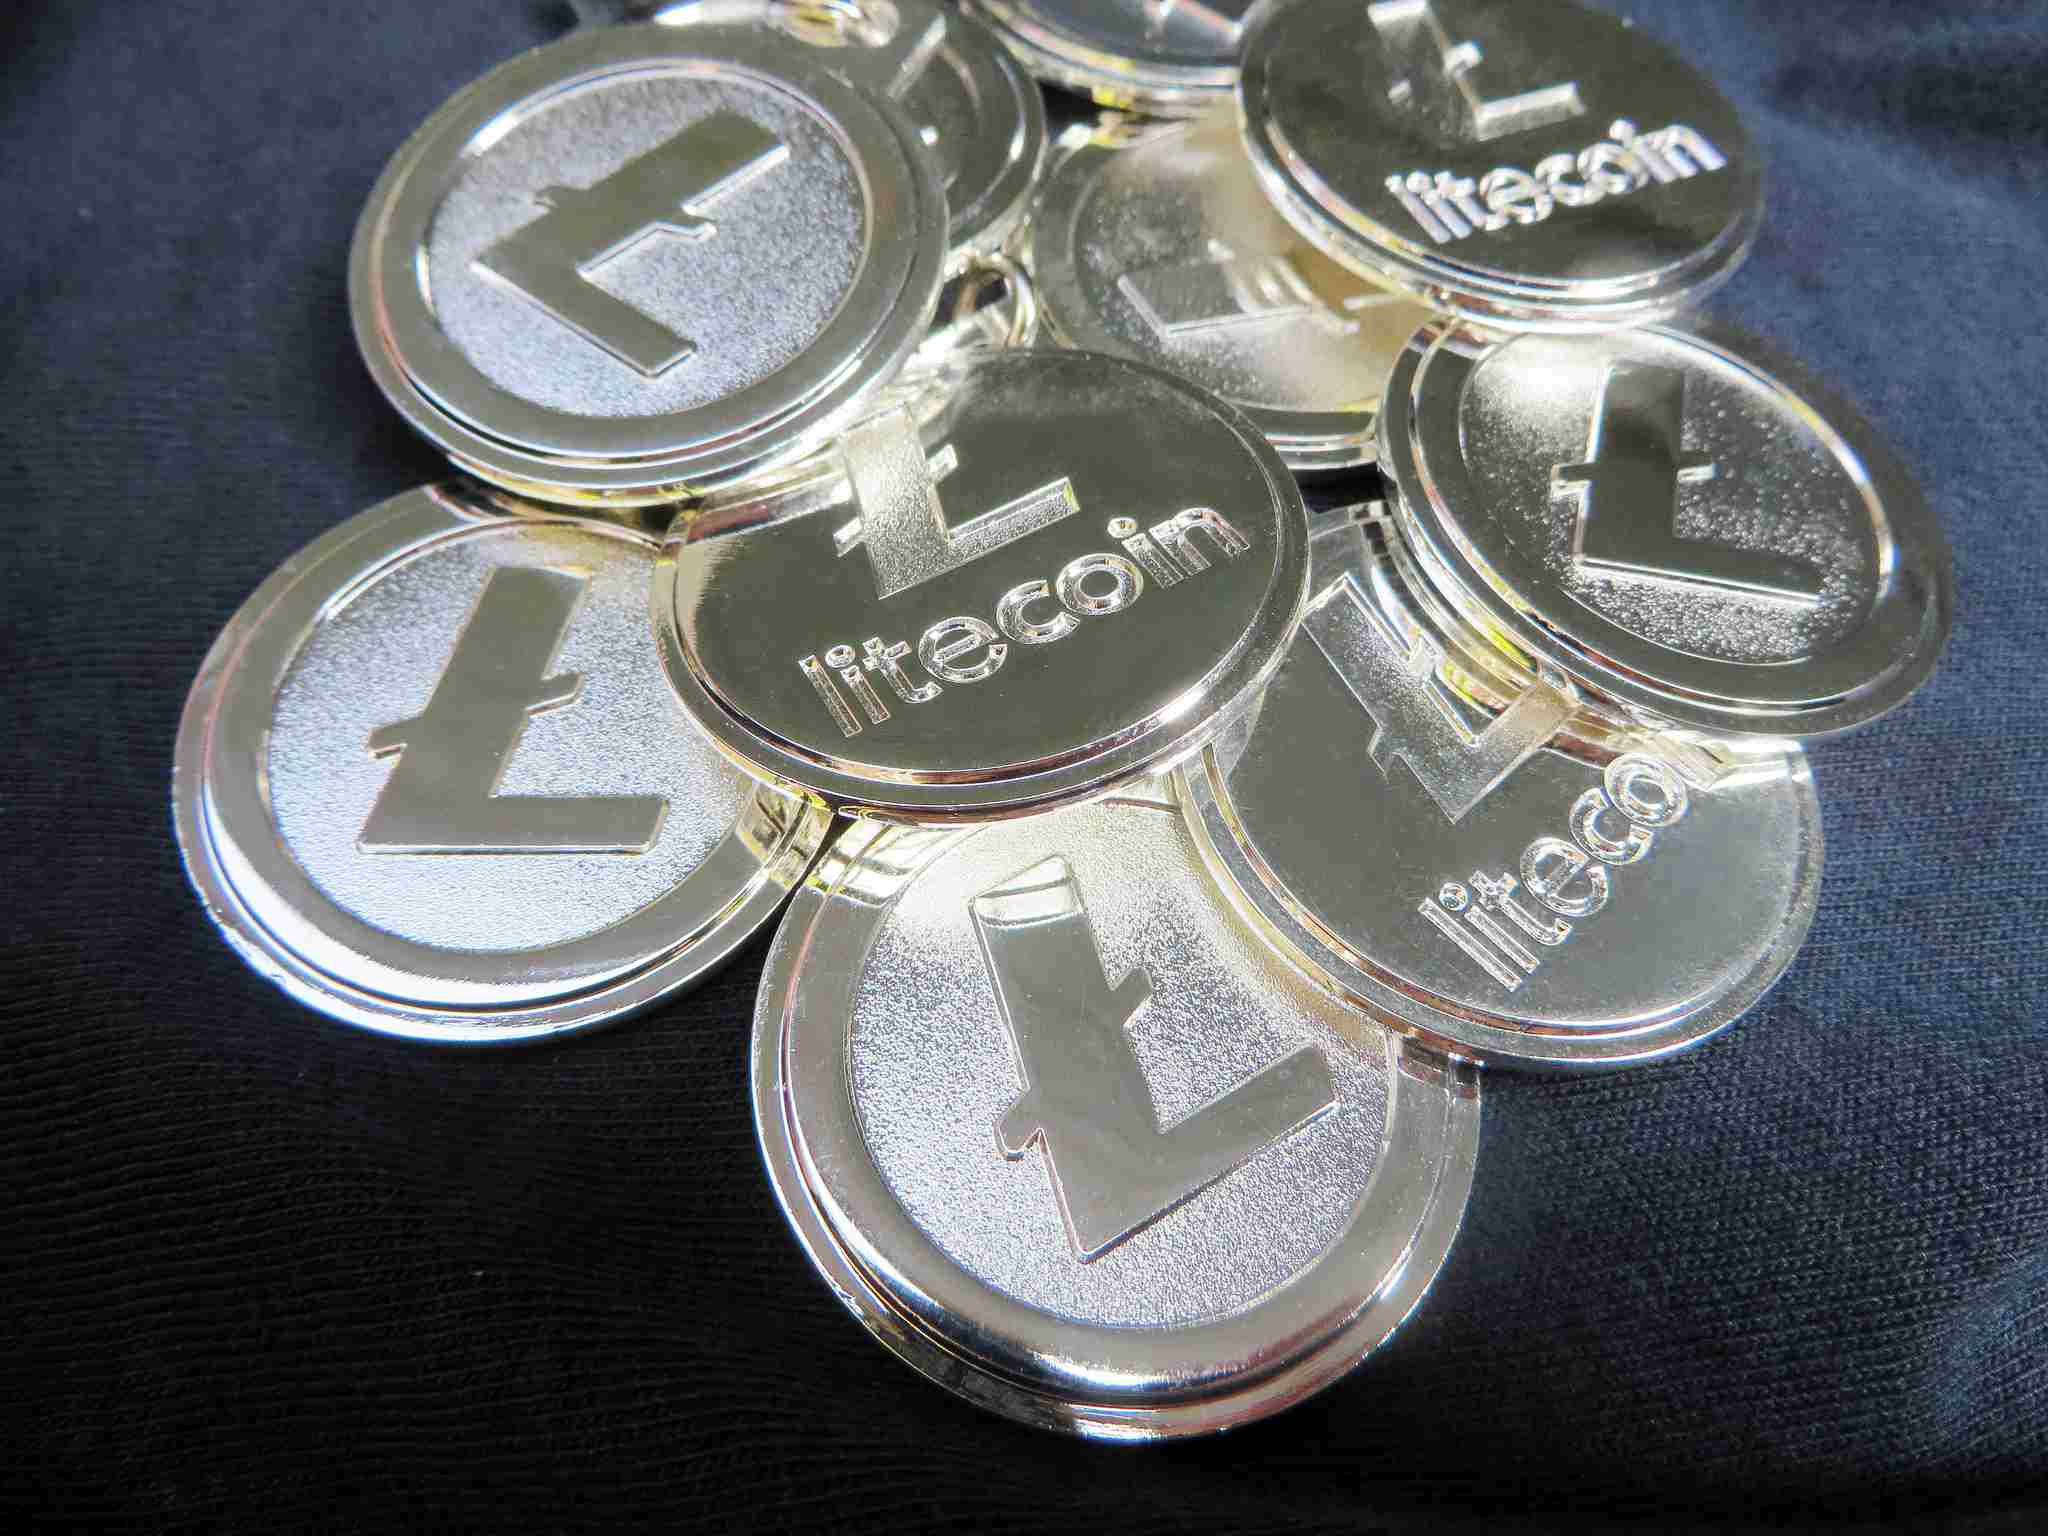 Pile of litecoin coins on fabric